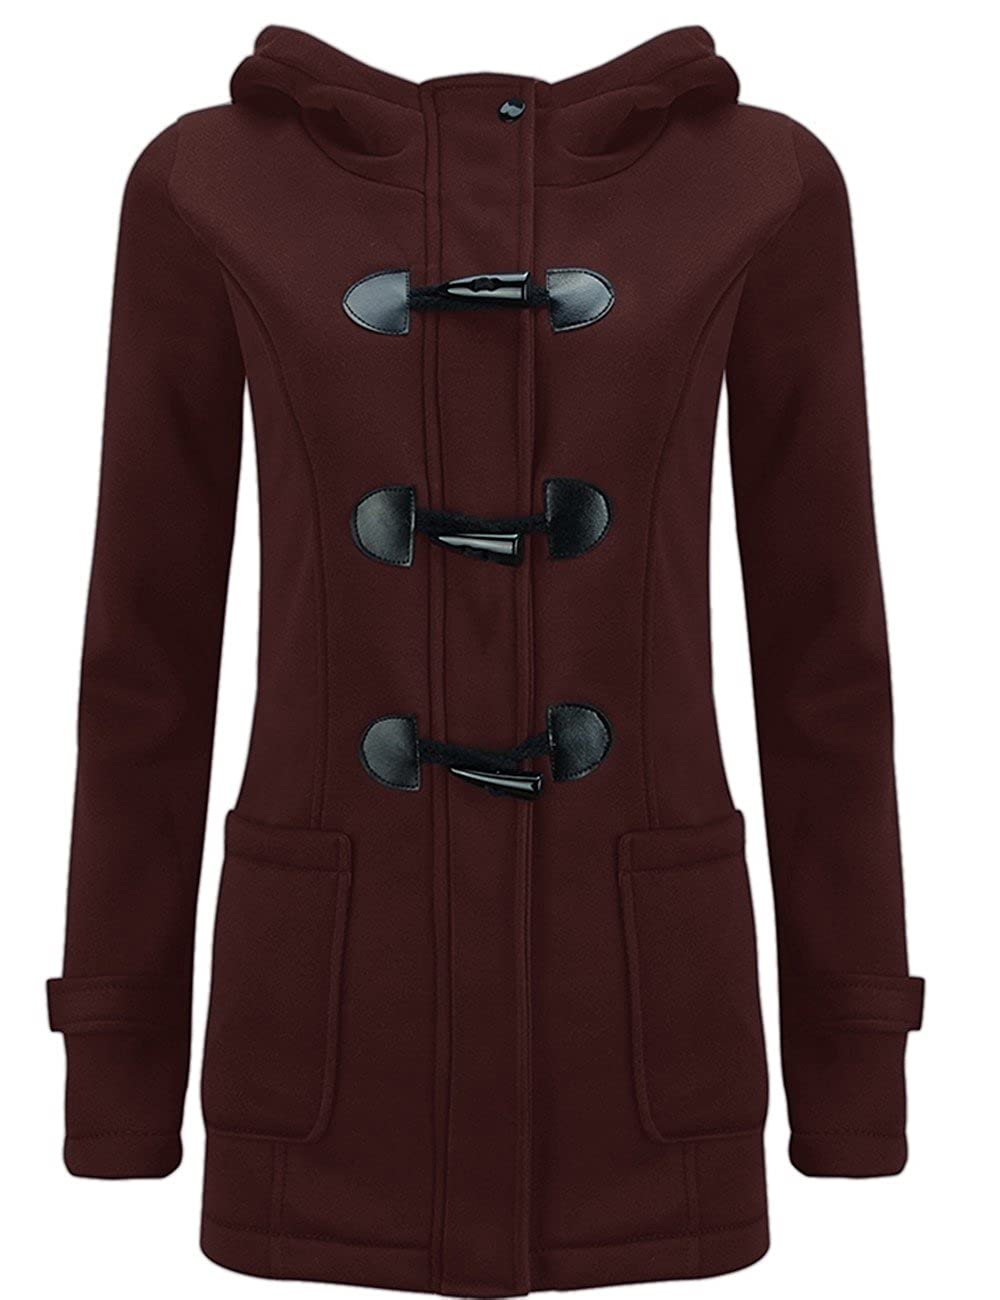 Z.M Womens Autumn Winter Pea Coat Wool Blended Hoodie Casual Button Jacket Coats